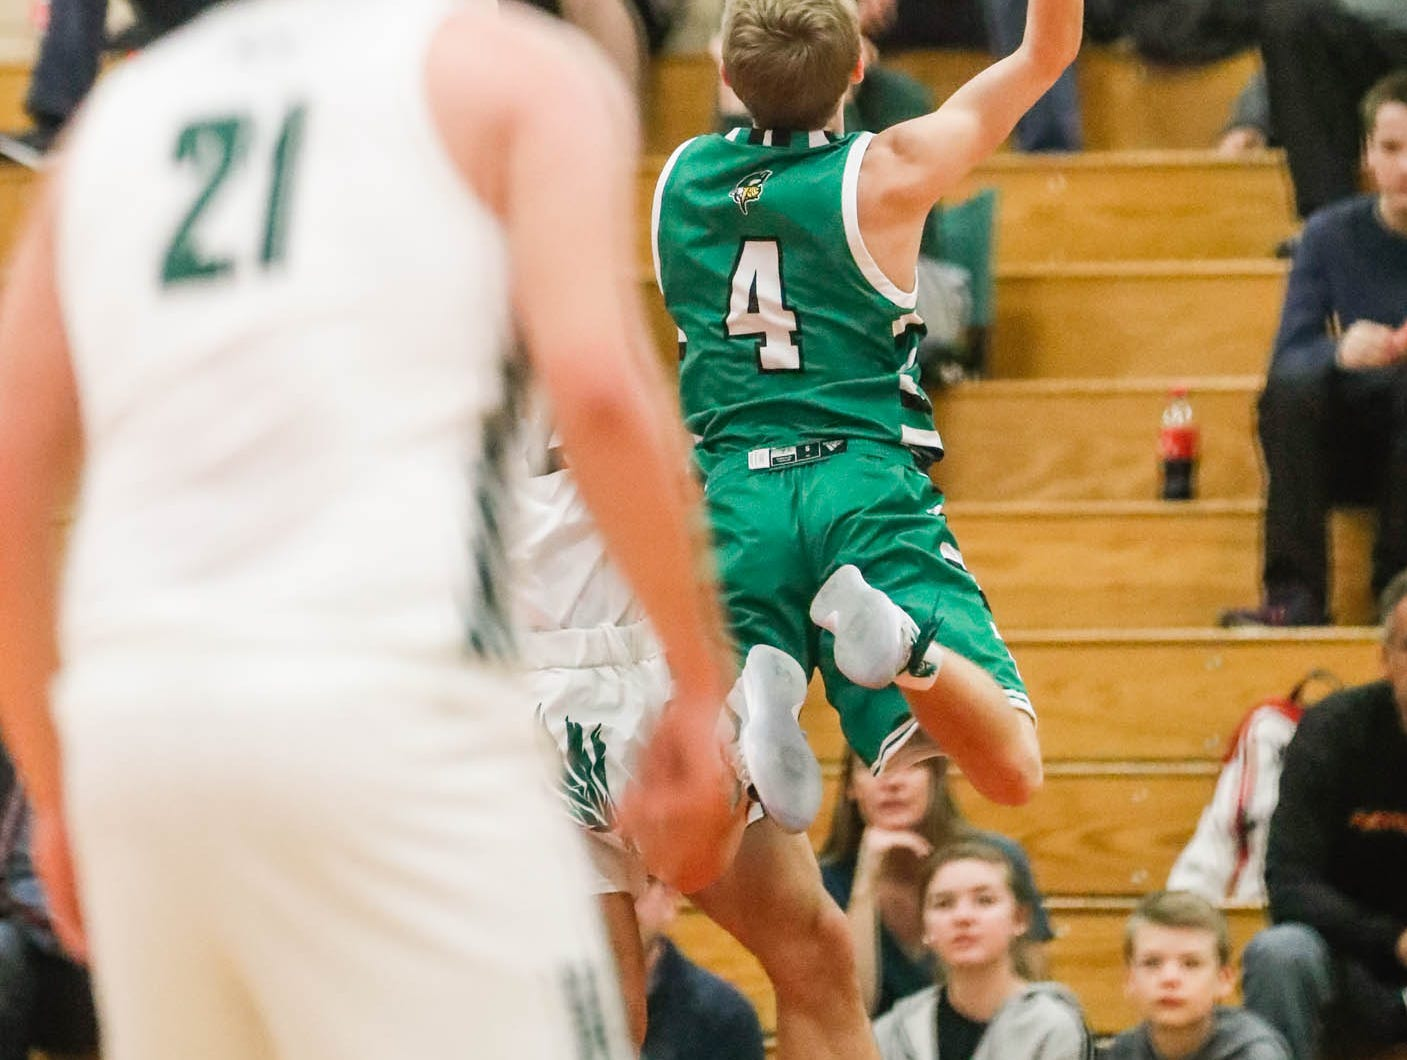 Valparaiso High School's Colin Walls (4) leaps for a layup during a game between Zionsville Community High School, and Valparaiso High School, in the 4th Annual Manuel Extravaganza Showcase held at Emmerich Manuel High School in Indianapolis on Saturday, Dec. 22, 2018.